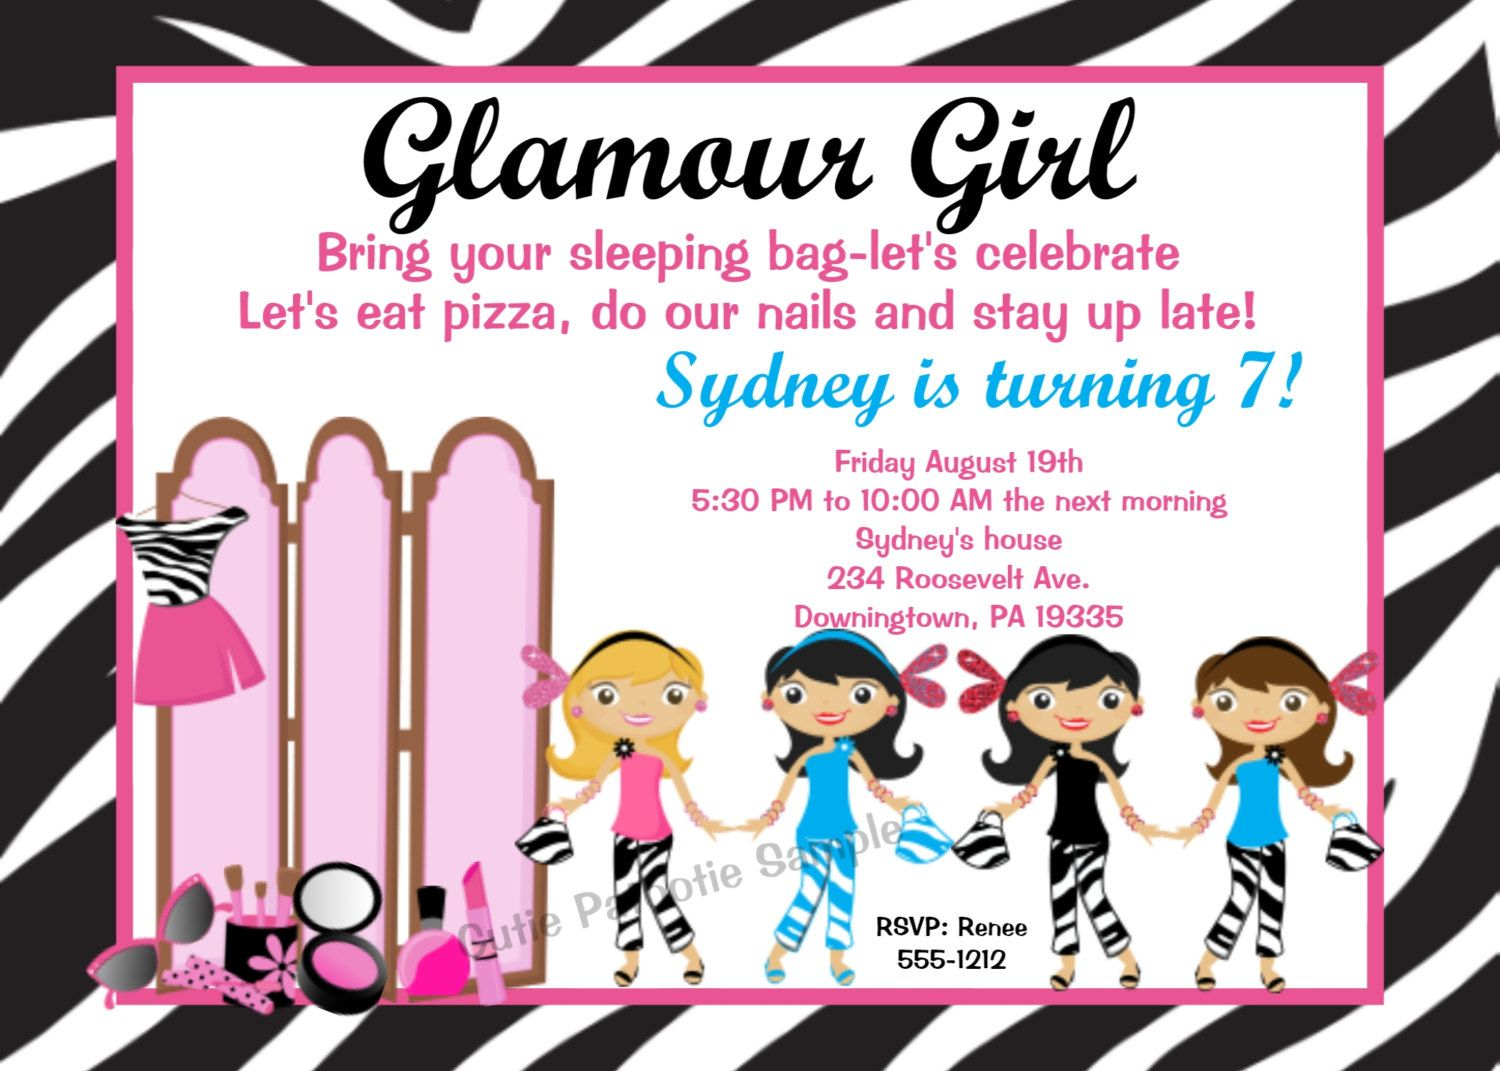 Glamour Girl Invitations Glamour Girl Birthday Party Invitation ...